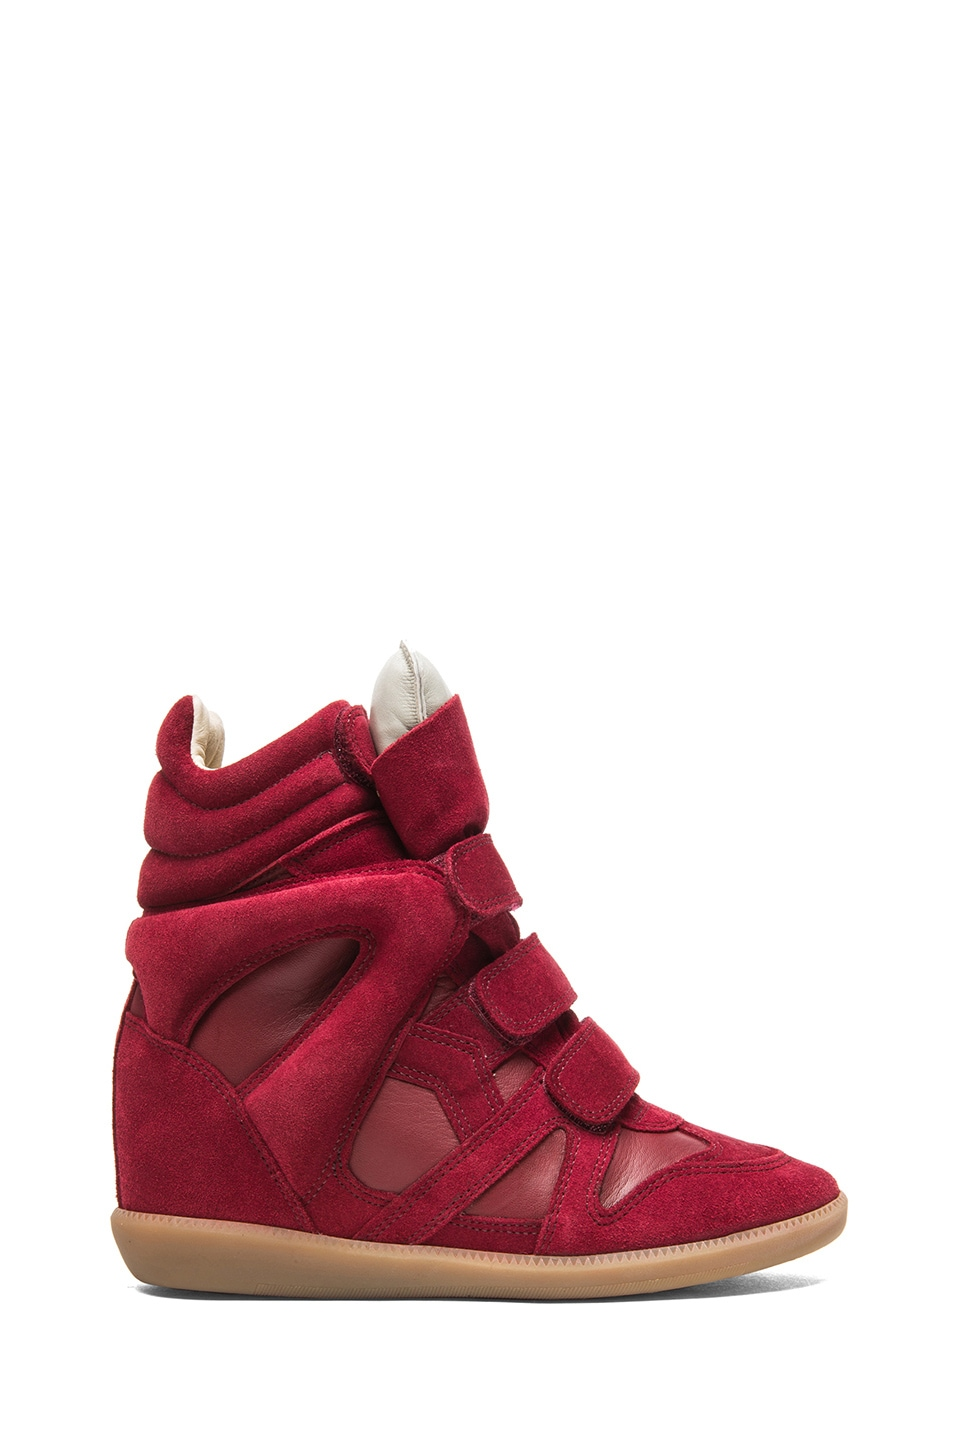 Image 1 of Isabel Marant Burt Calfskin Velvet Leather Sneakers in Burgundy